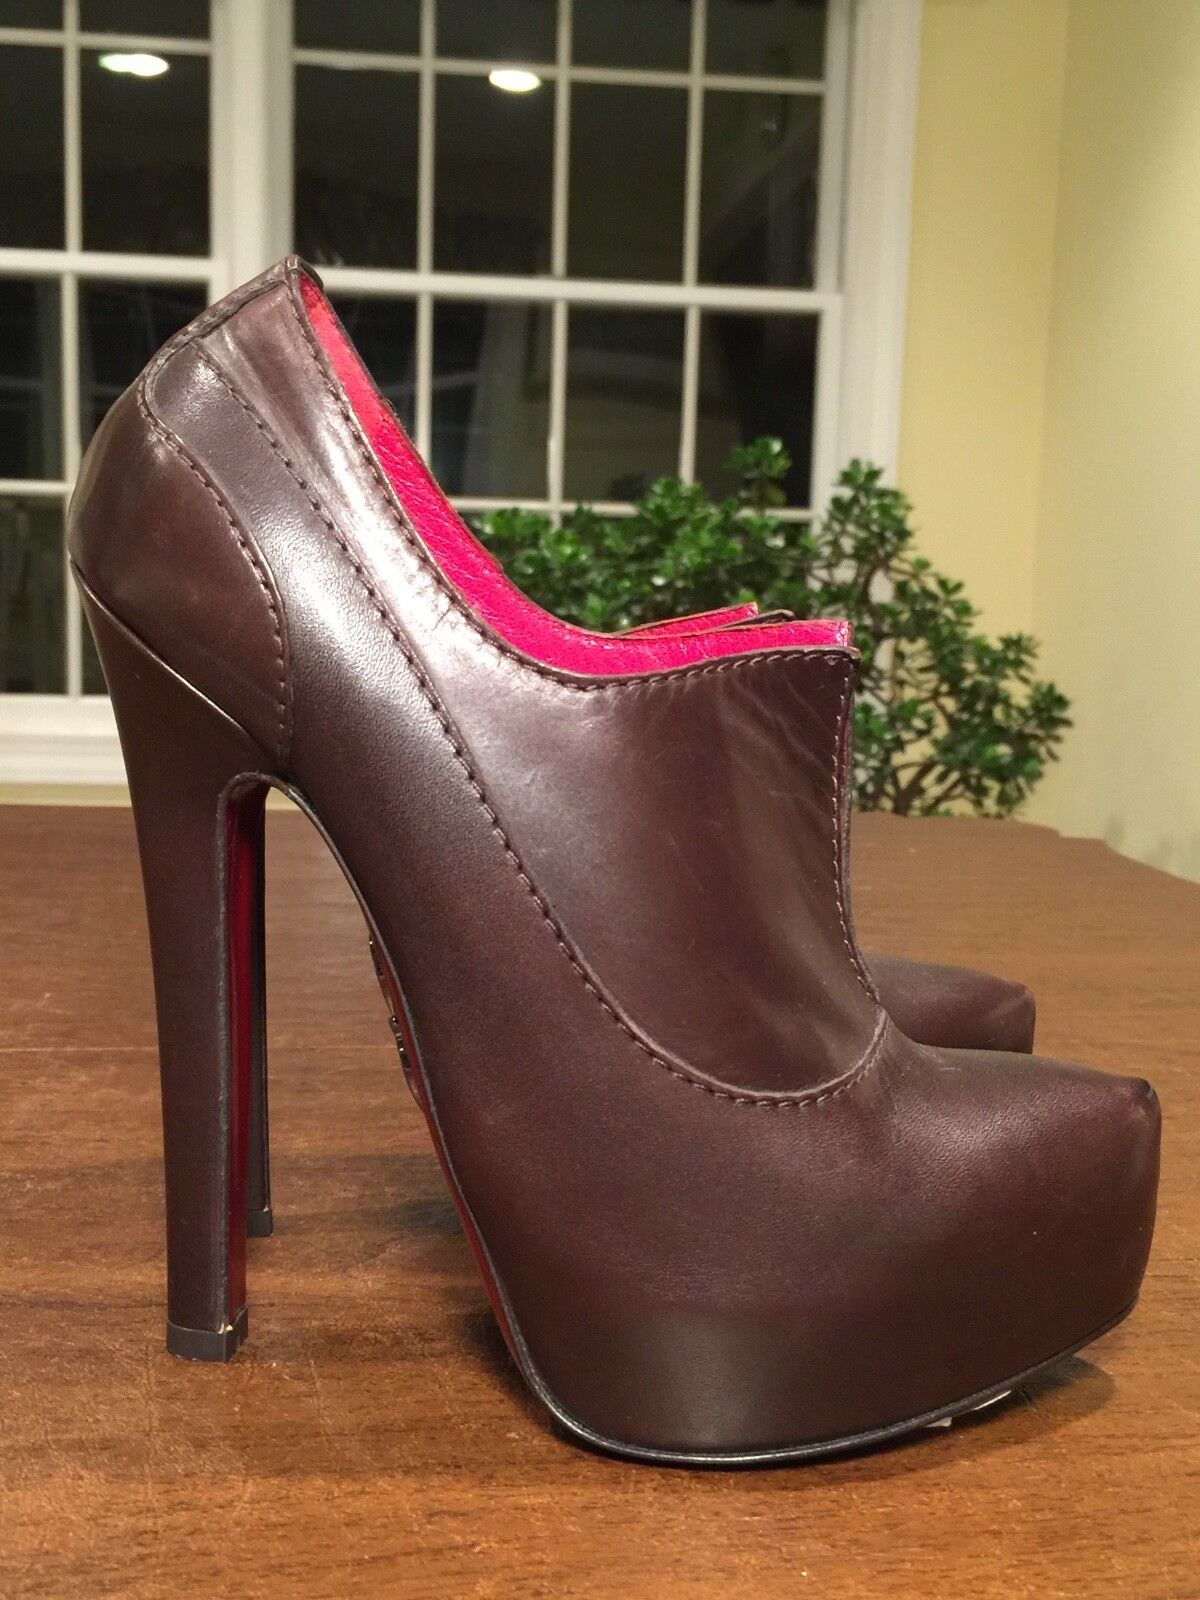 New w  Tags  900 BRIONI Sz 37 US 6.5 Brown Leather Ankle Boots High Heel Booties